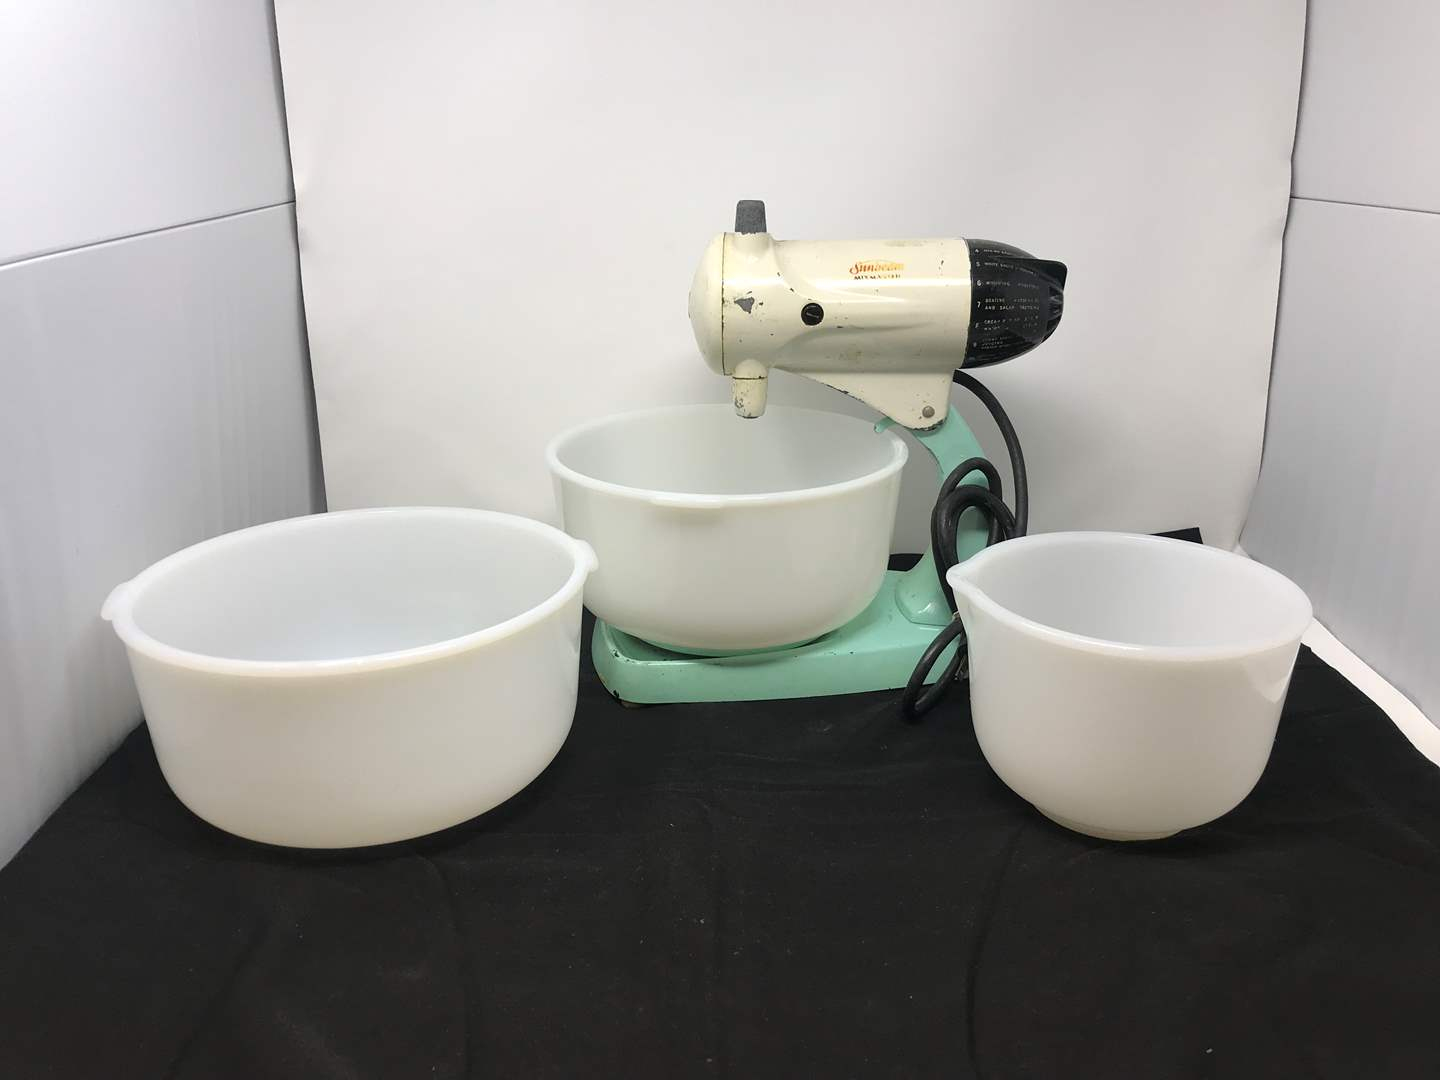 Lot # 88 - Vintage Sunbeam Blender w/Out Beaters (main image)